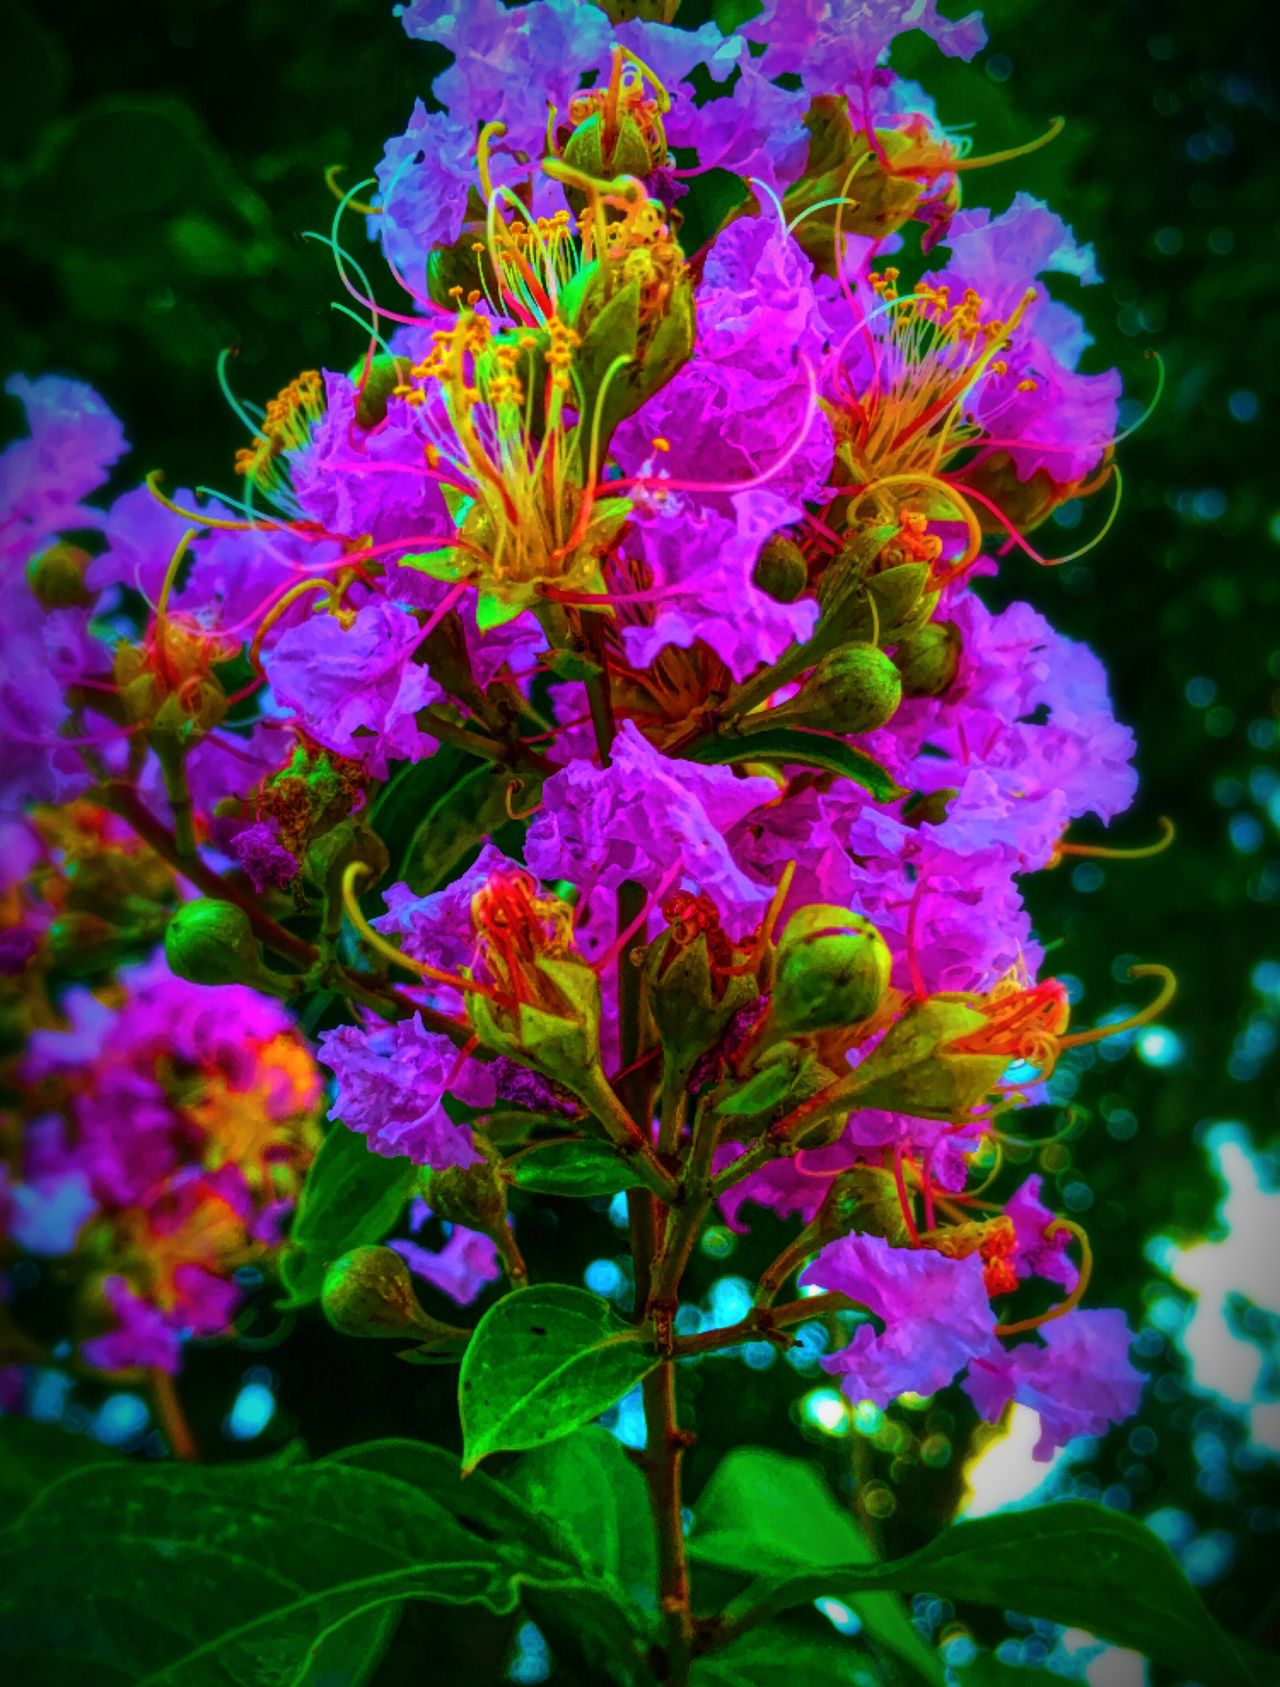 Purple Flowers of late Spring and Green Leaves. Close-up and Vibrant Colors